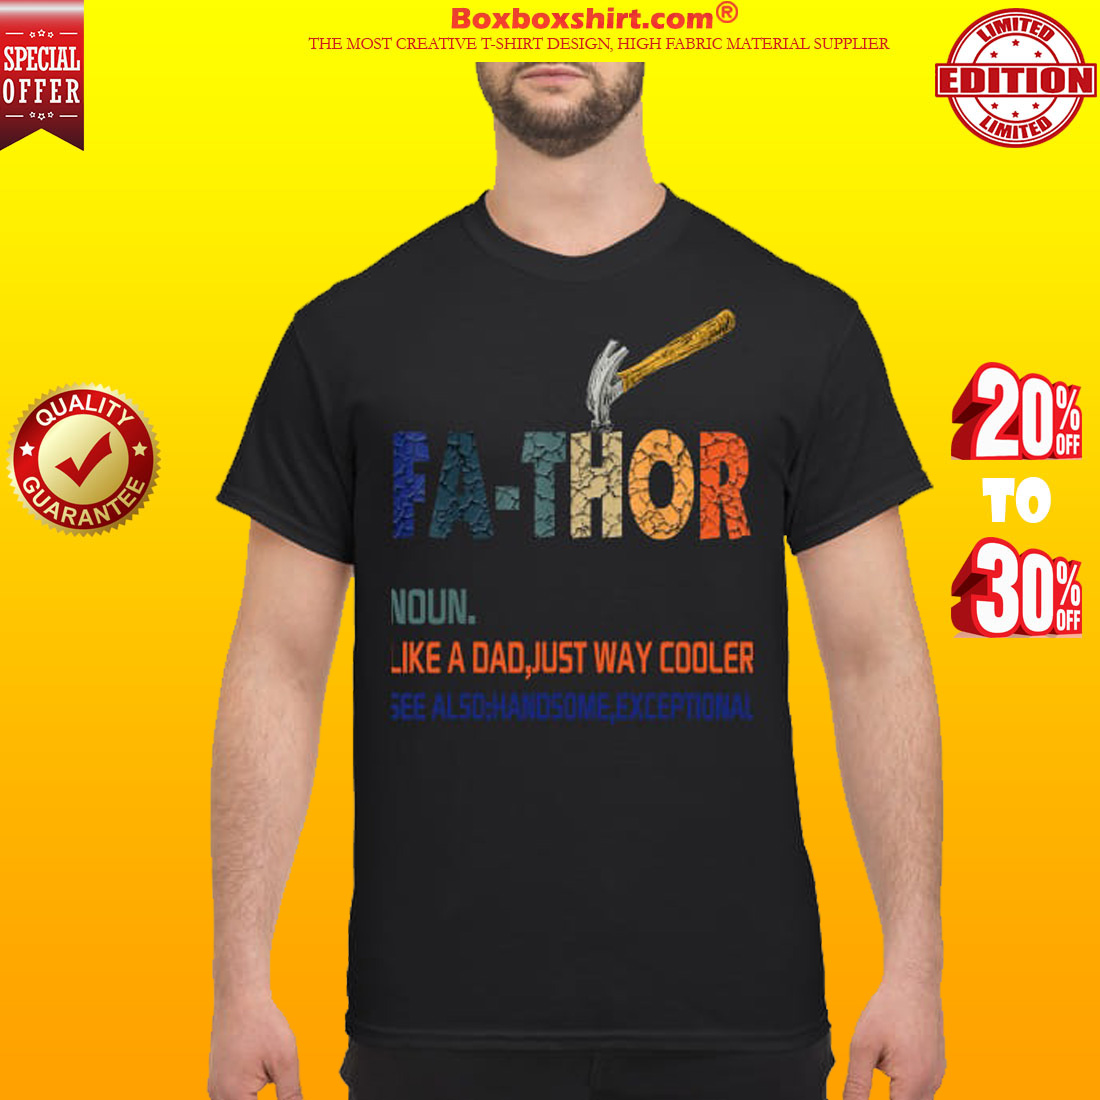 6f5797f1 Fa-thor hammer like a dad just way cooler handsome exceptional shirt